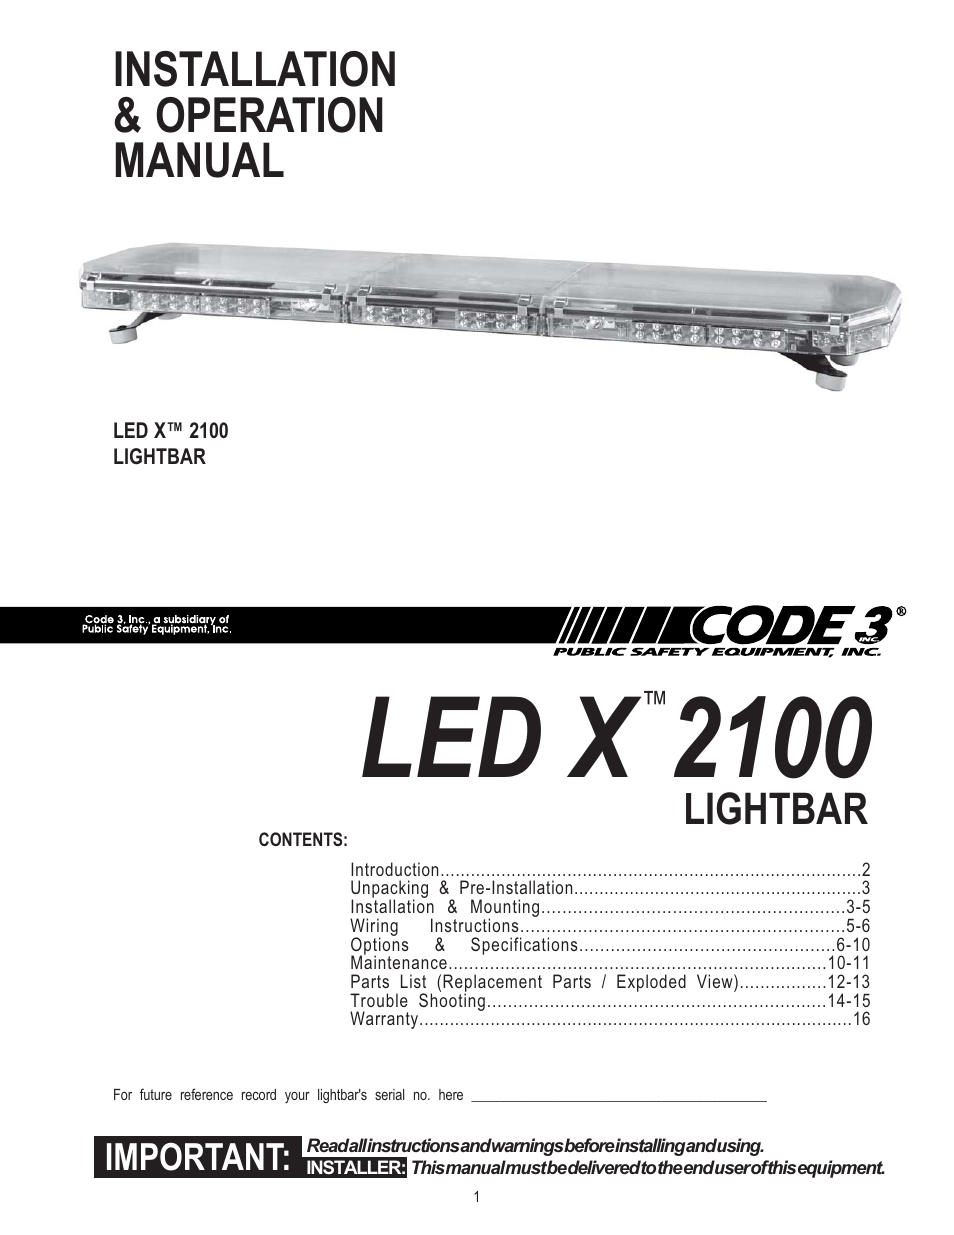 code 3 light bar wiring diagram data schema jetsonic light bar wiring  diagram code 3 2100